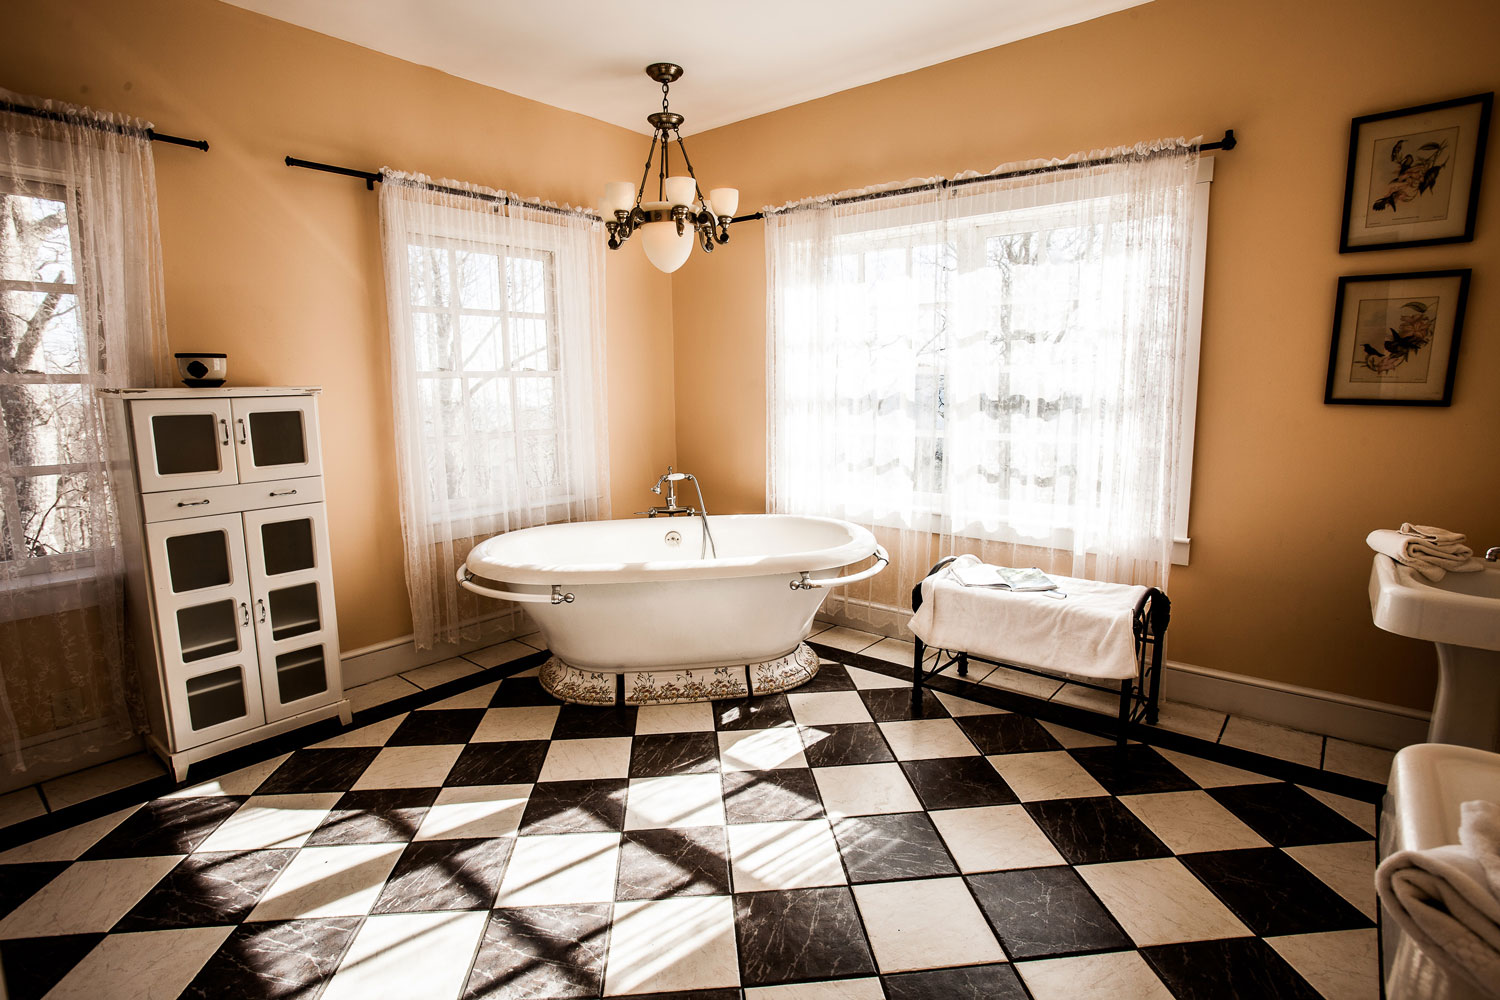 A soaking bathtub surrounded by natural light, large windows, and a hanging chandelier. His and hers sinks are against the opposite wall of the bathtub. This bathroom is part of the Versace suite.